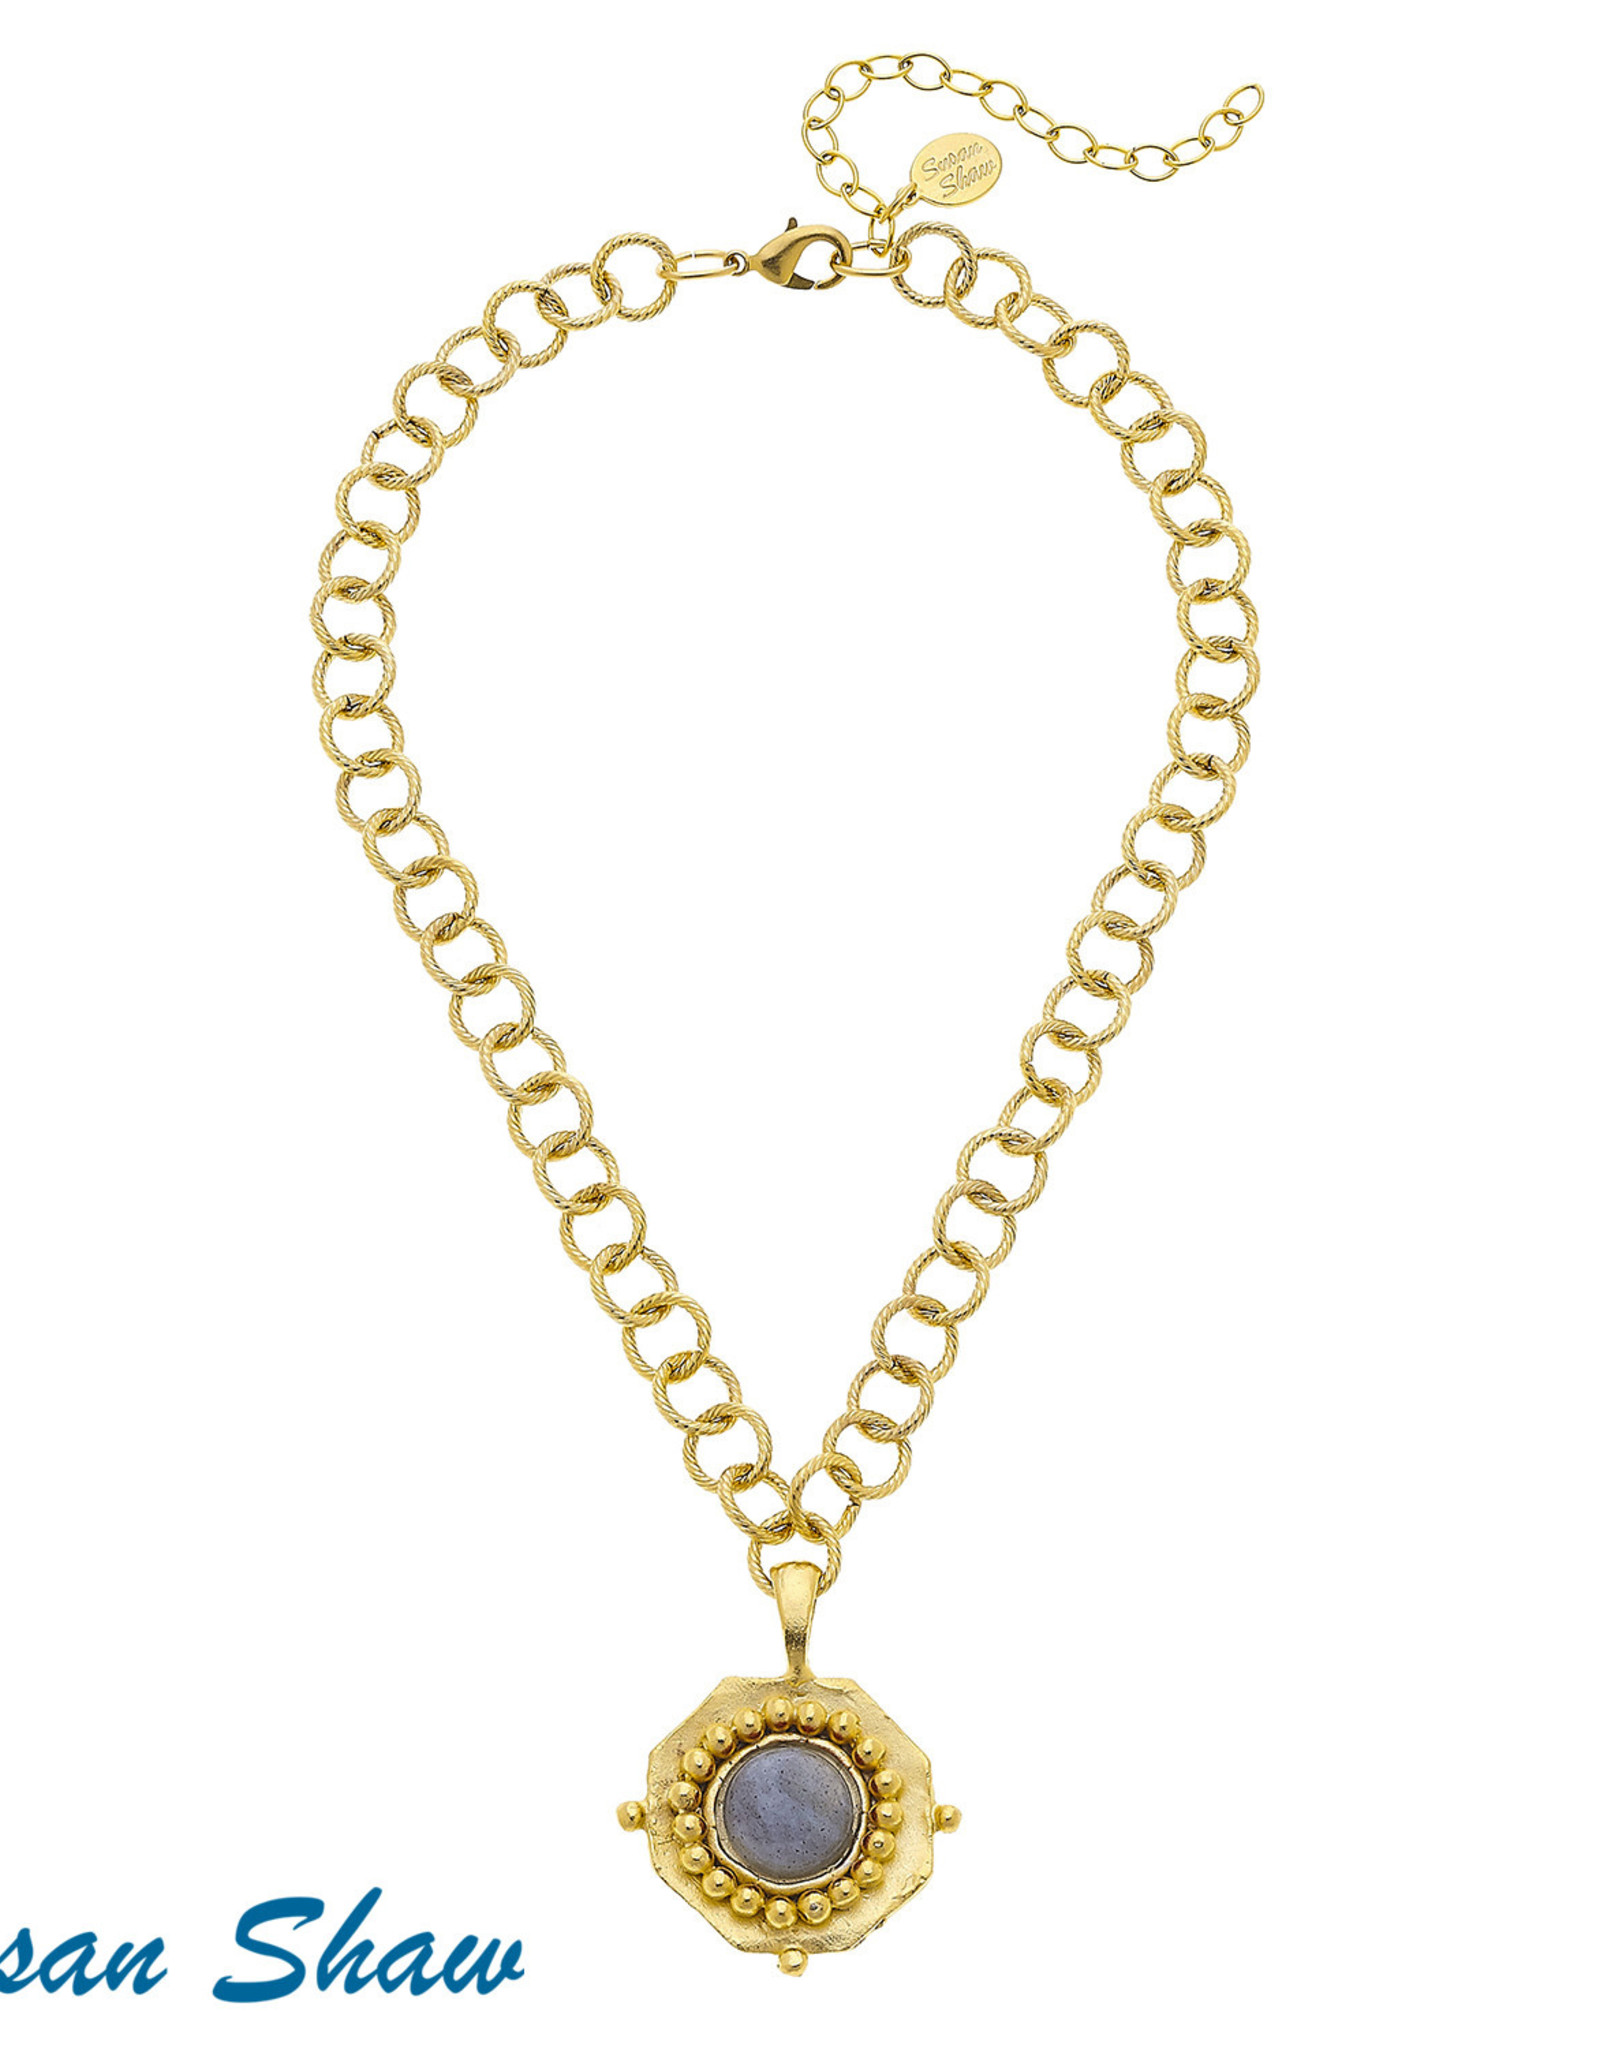 Susan Shaw Gold & Labordite Necklace